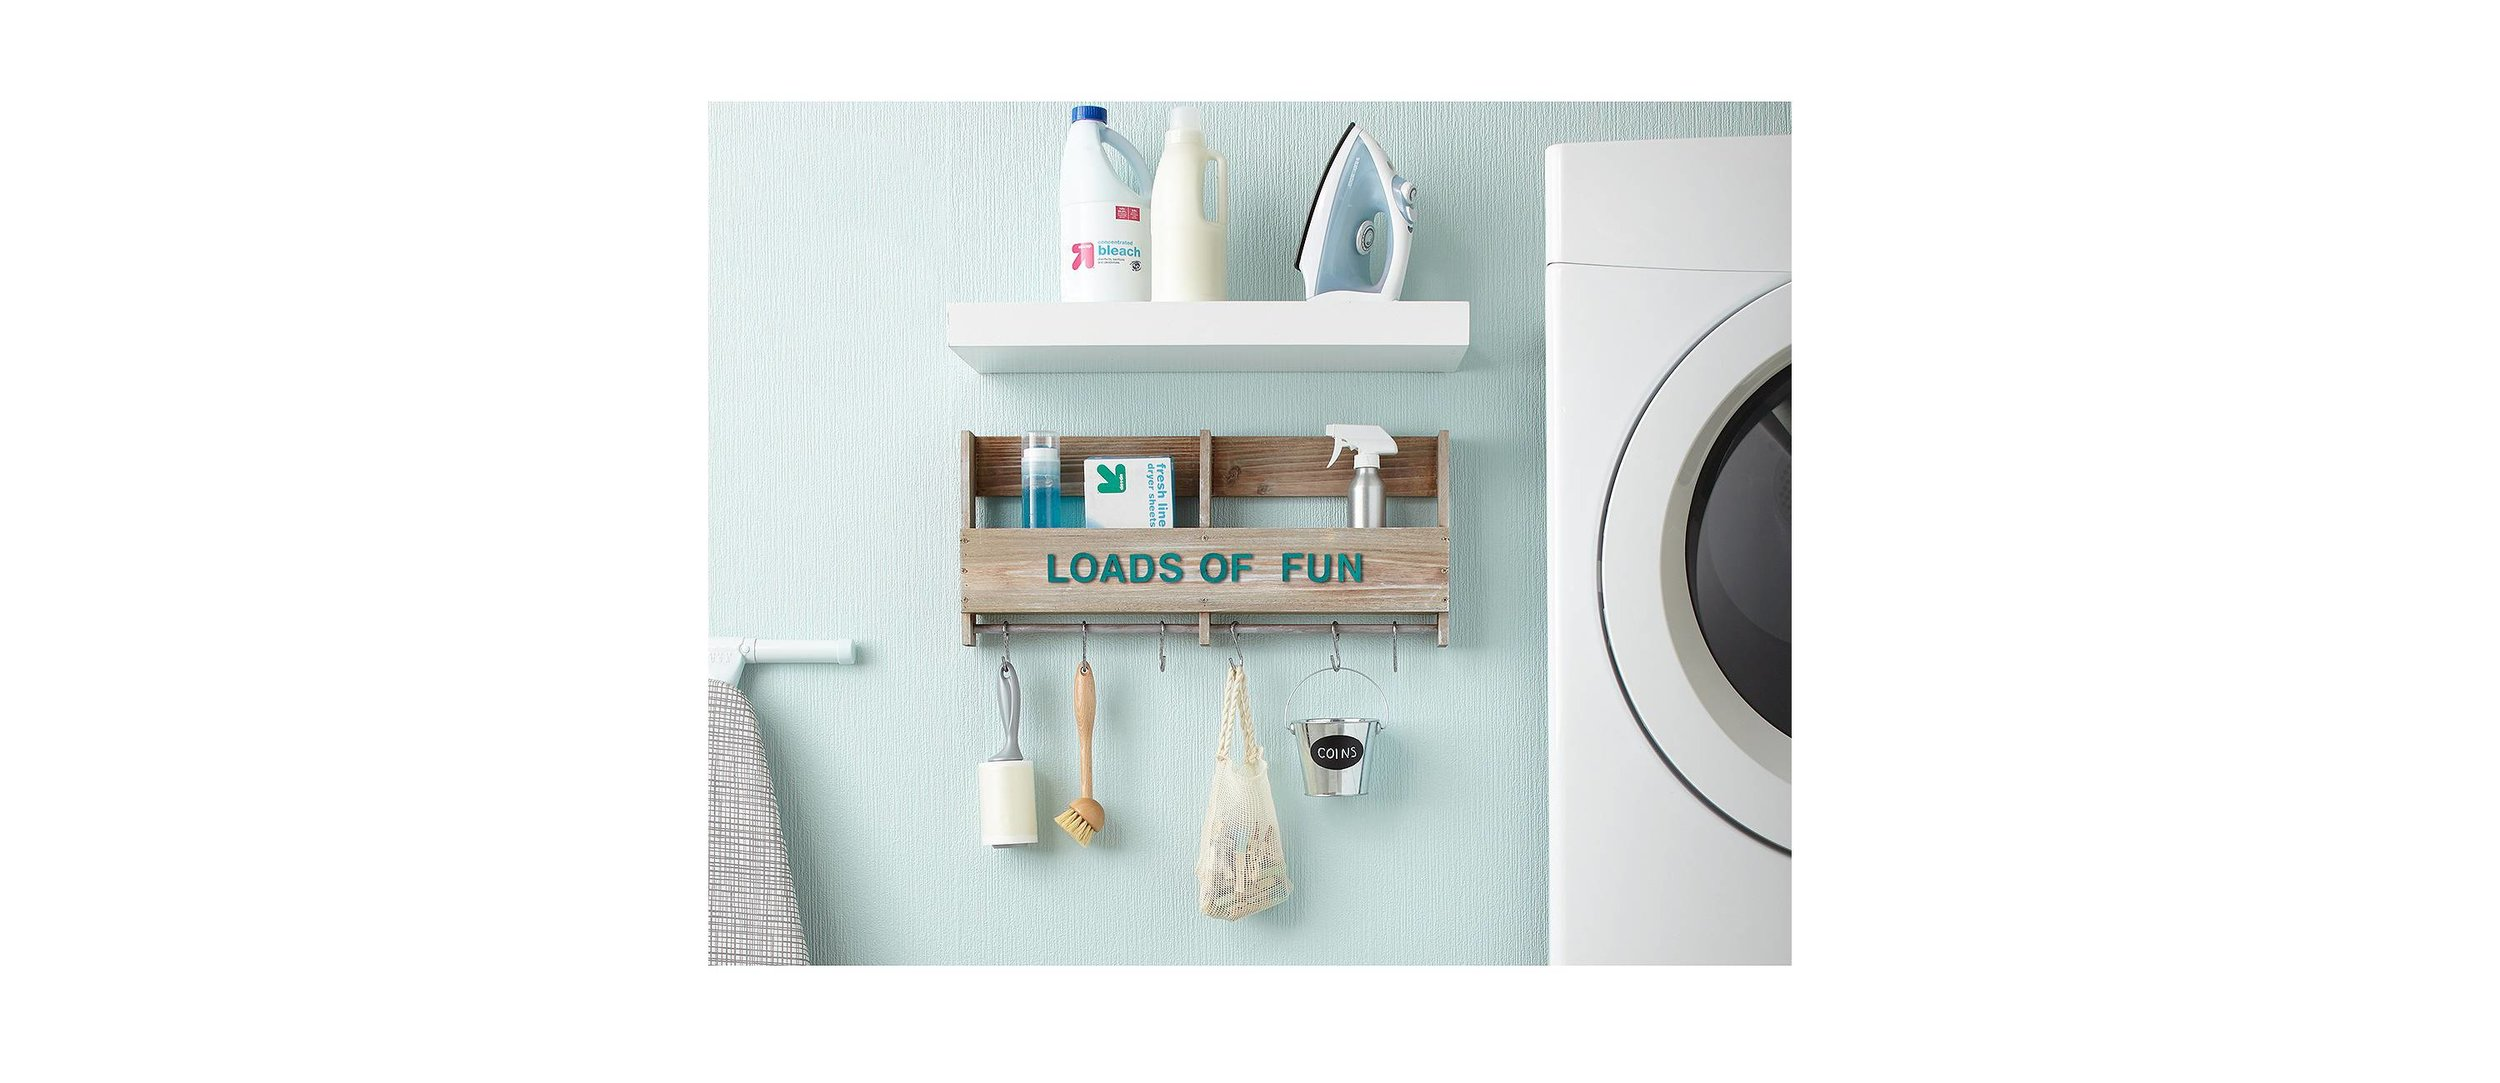 Great use of wall space in a laundry room. Photo:  Target.com